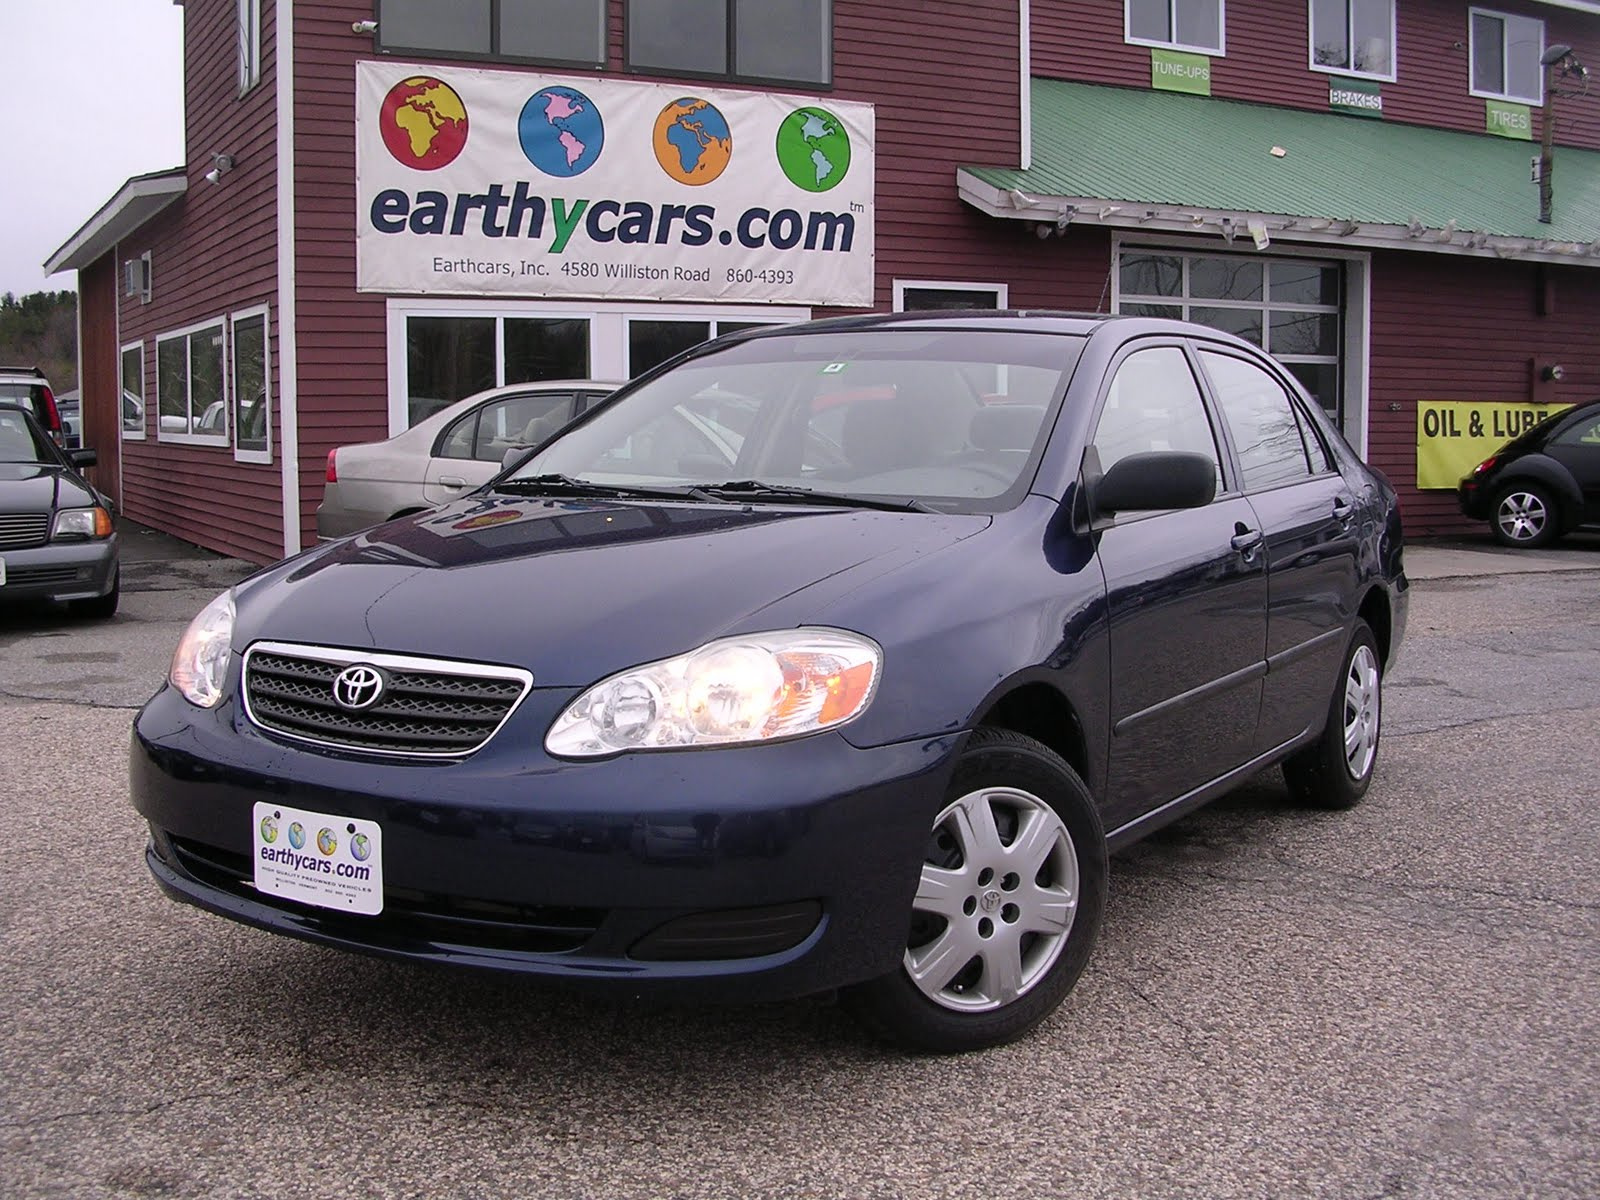 2005 Toyota Corolla Mpg >> Earthy Cars Blog Earthy Car Of The Week 2005 Blue Toyota